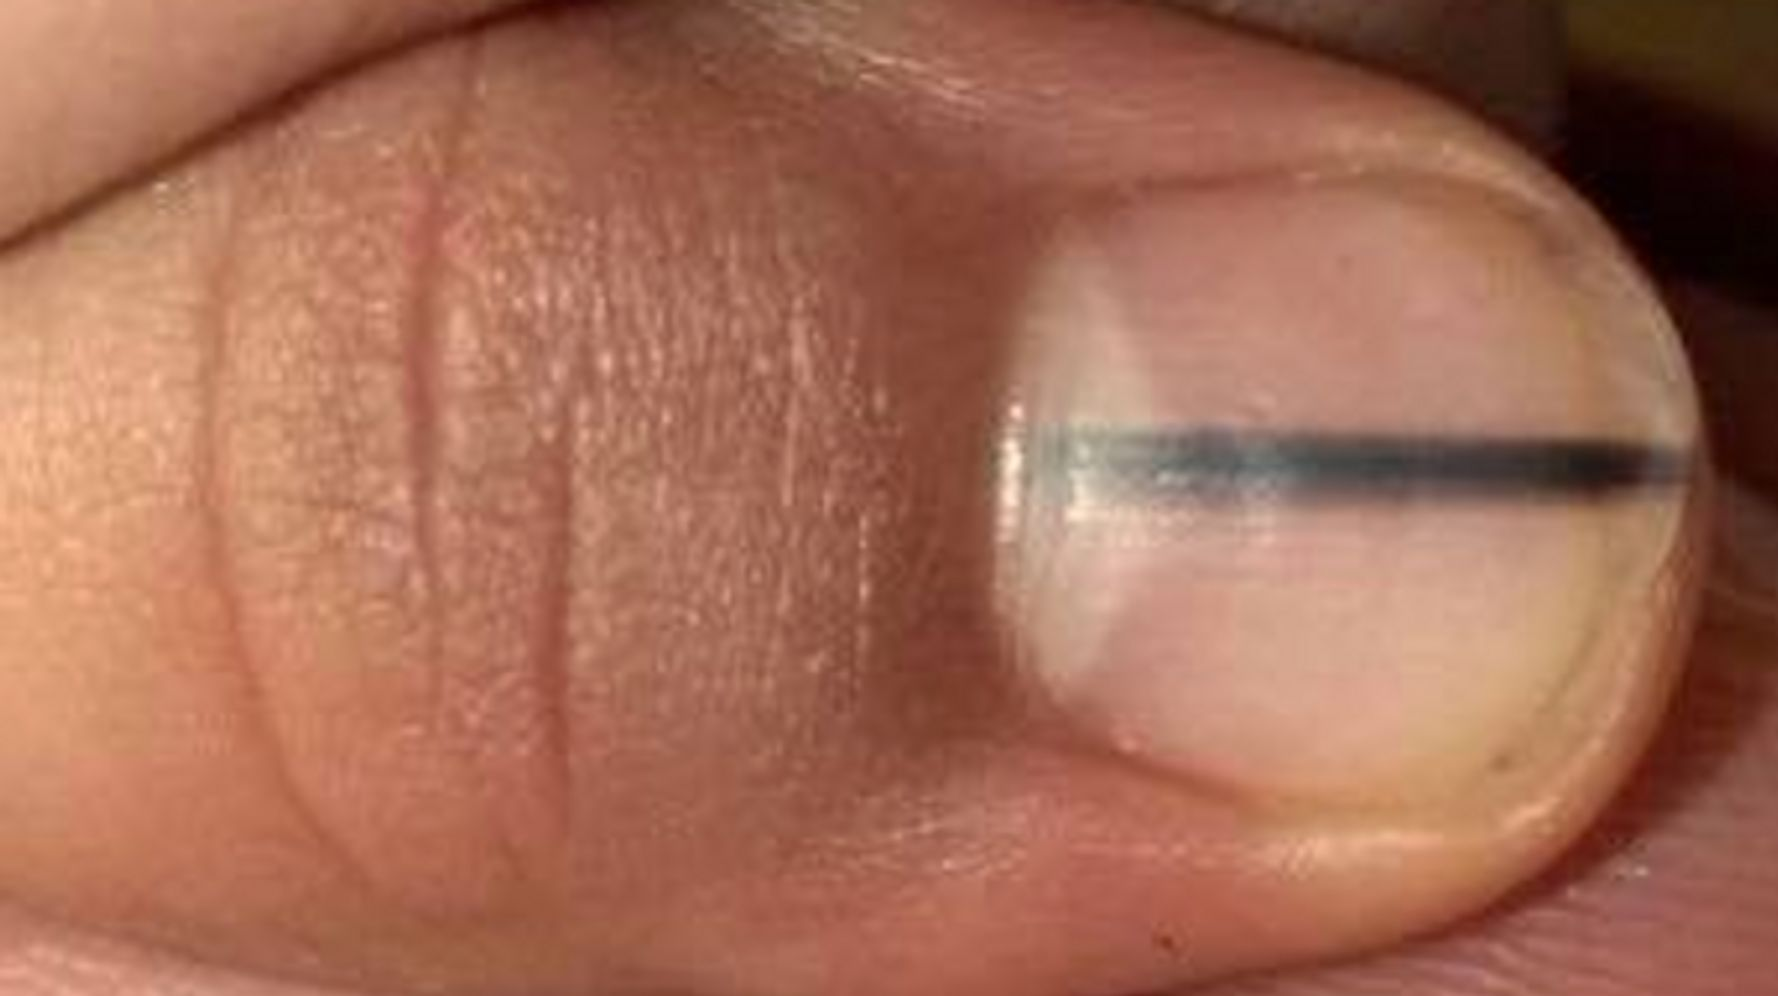 Dark Stripe On Nail The Unexpected Symptom Of Skin Cancer We Should All Be Wary Of Huffpost Uk Life